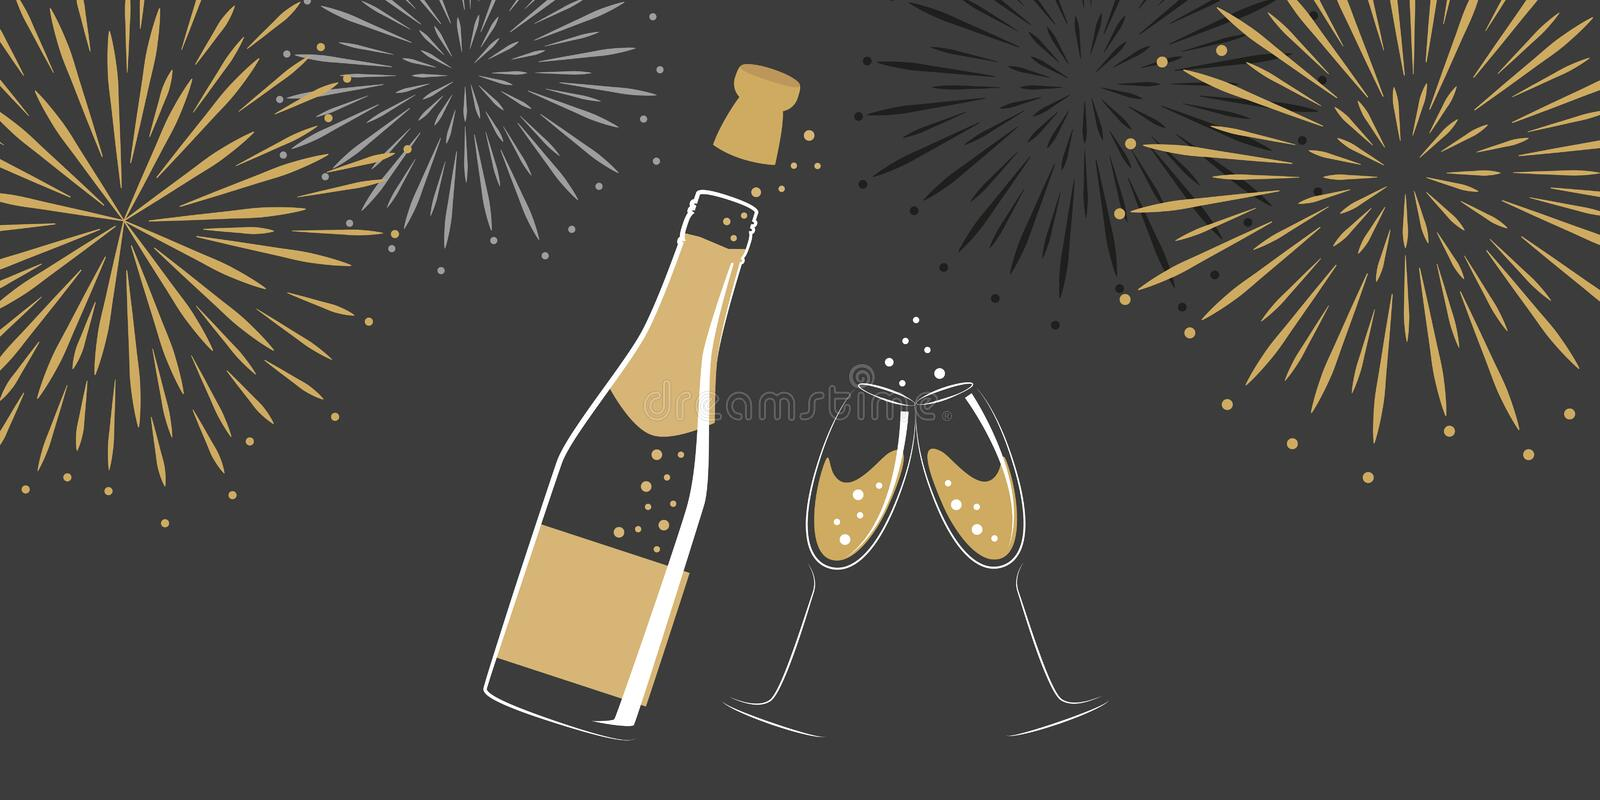 Champagne bottle and glasses with new year fireworks. Vector illustration EPS10 vector illustration